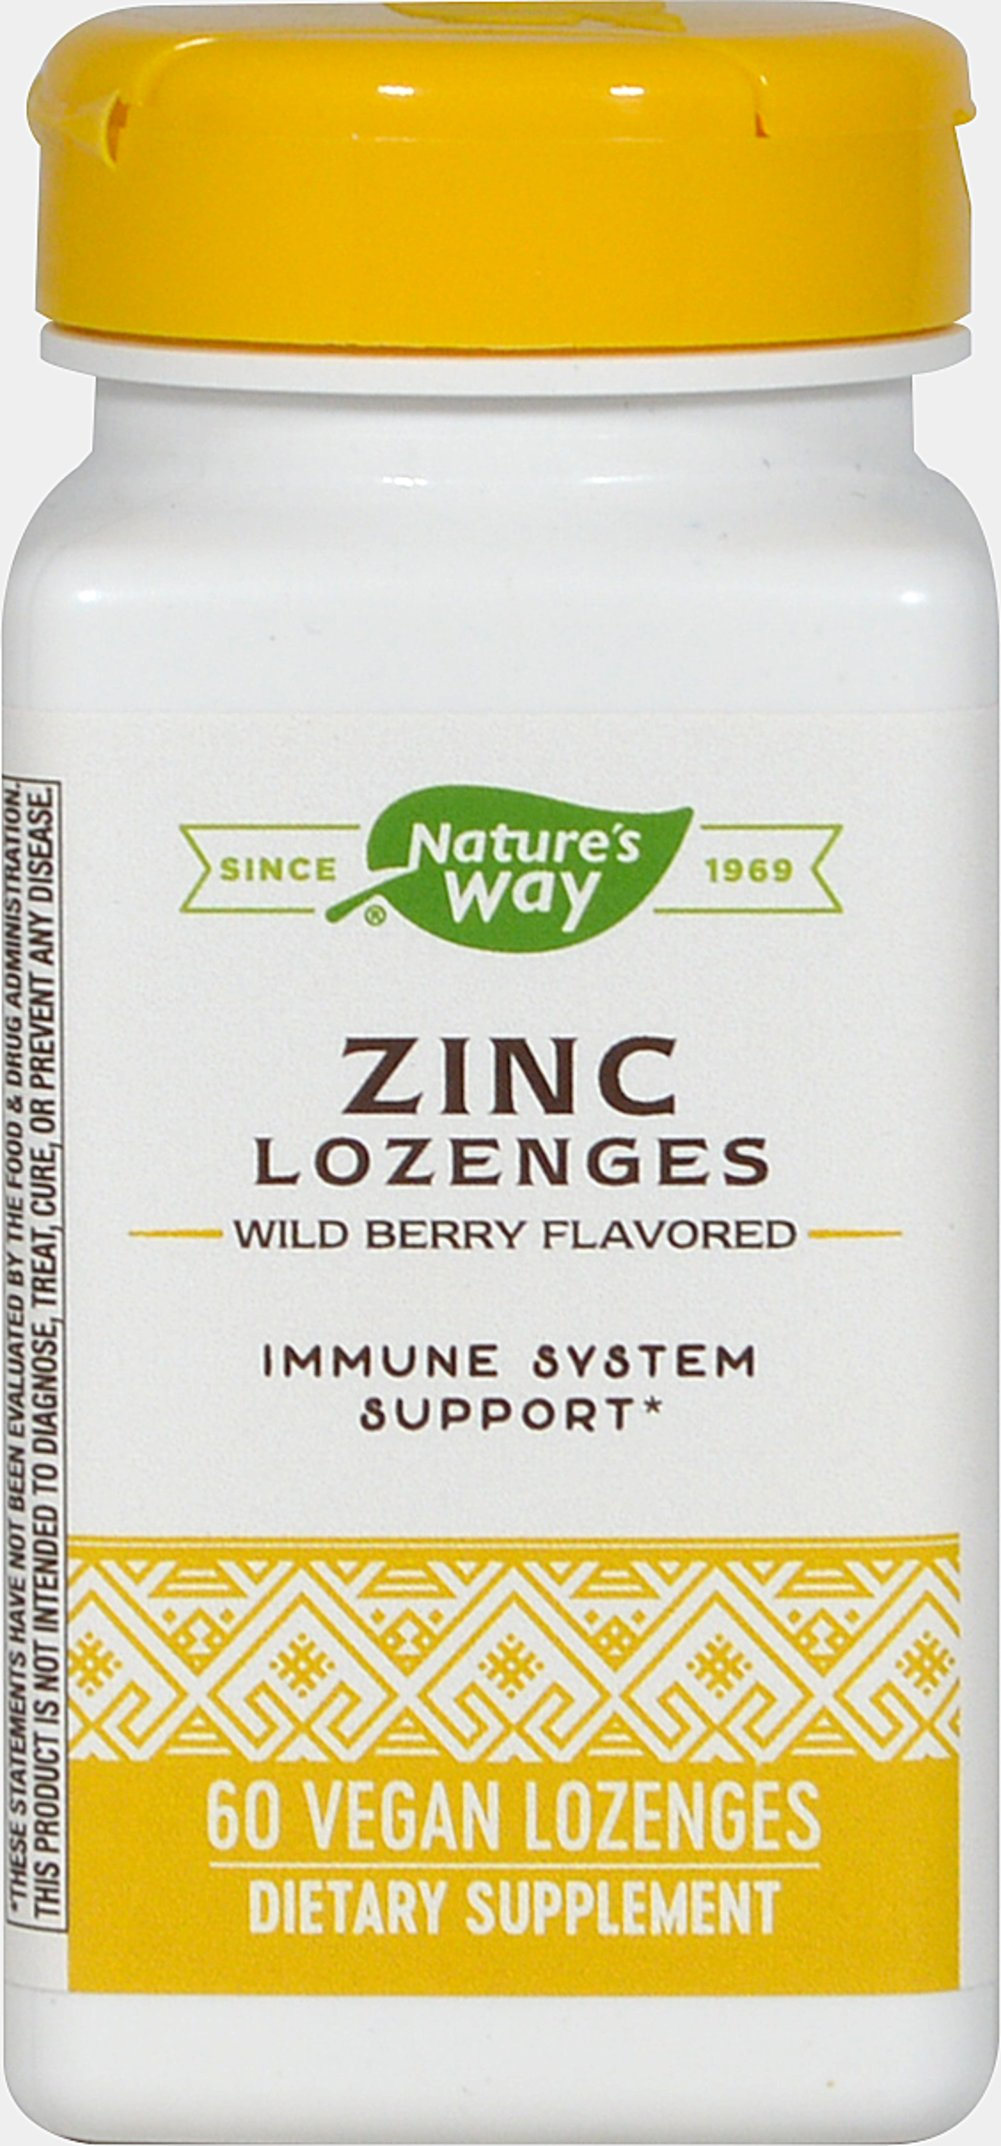 Zinc Lozenges with Echinacea and Vitamin C <p><strong>From Manufacturer's Label:  </strong></p><p>Natural Berry Flavor</p><p>With Echinacea and Vit C</p><p>Zinc helps protect against free radicals and is recognized as an important nutritional support during the winter season.**</p><p>Manufactured by Nature's Way<br /></p> 60 Lozenges  $3.49